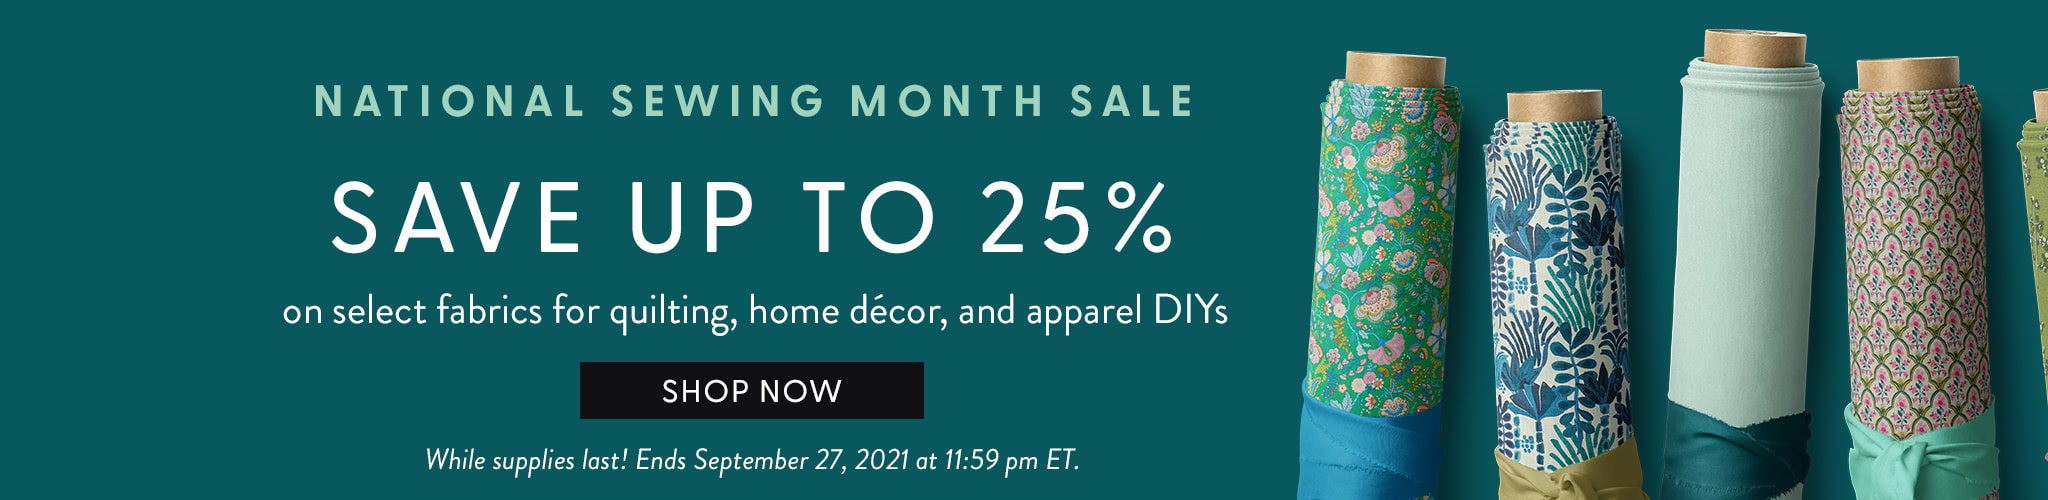 National Sewing Month Sale. Save up to 25% on select fabrics for quilting, home decor, and apparel DIYs. Shop now. While Supplies Last! Ends September 27, 2021 at 11:59 pm ET.